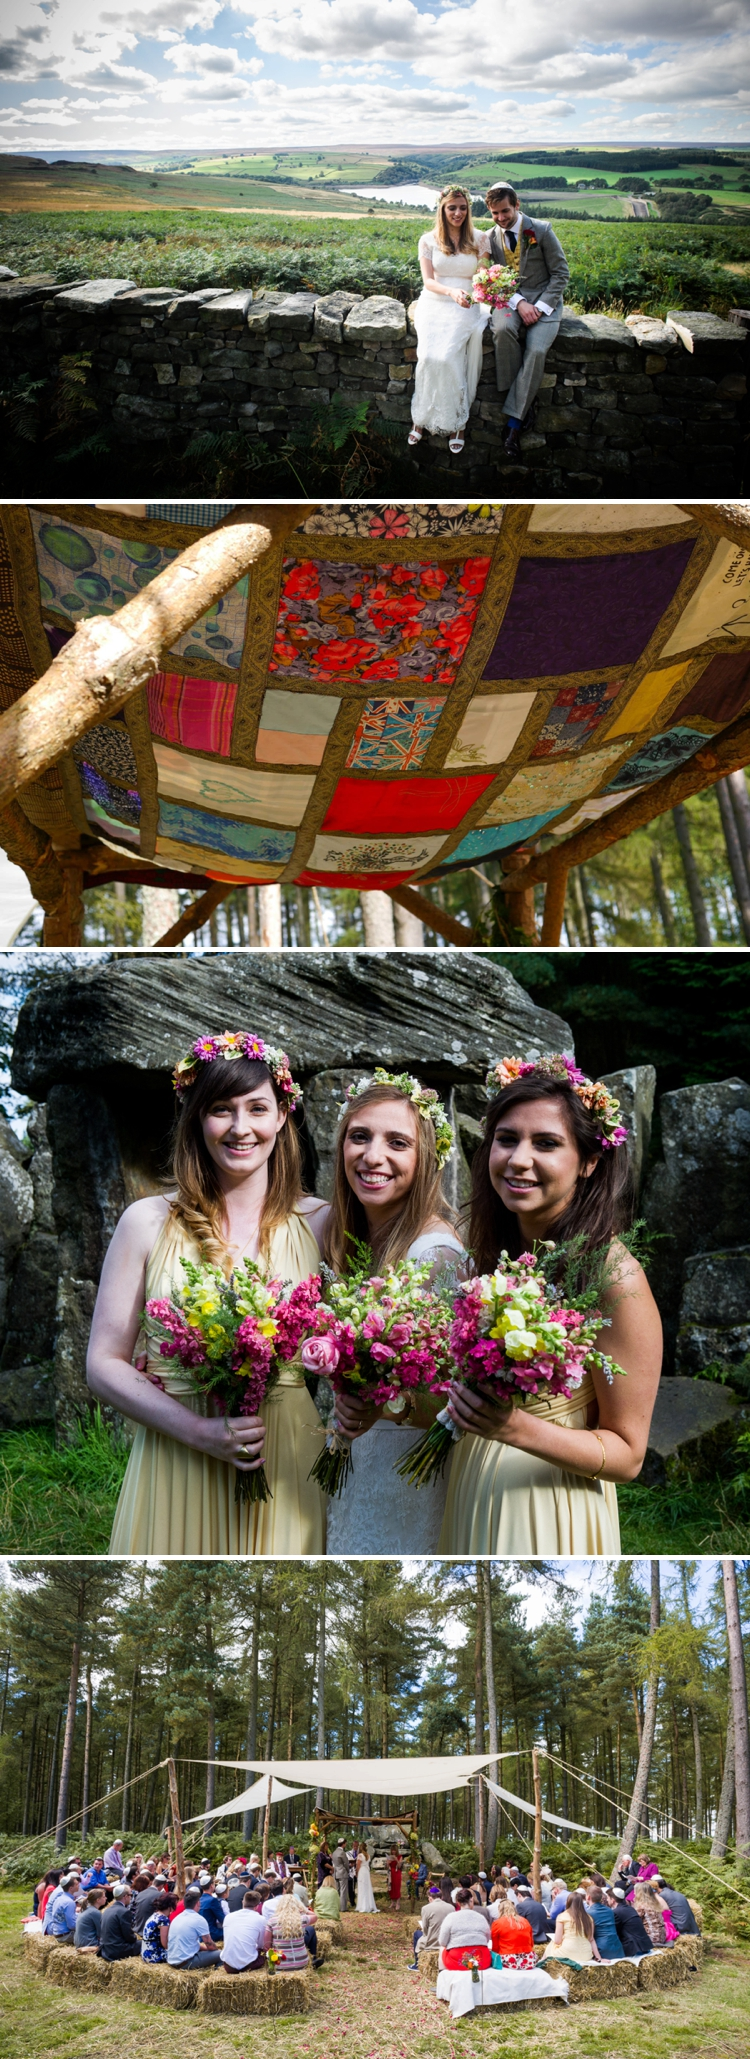 Outdoor-rustic-relaxed-Jewish-wedding-full-of-handmade-and-DIY-details-at-The-Bivouac-Swinton-Park-North-Yorkshire-UK_0100 (1)